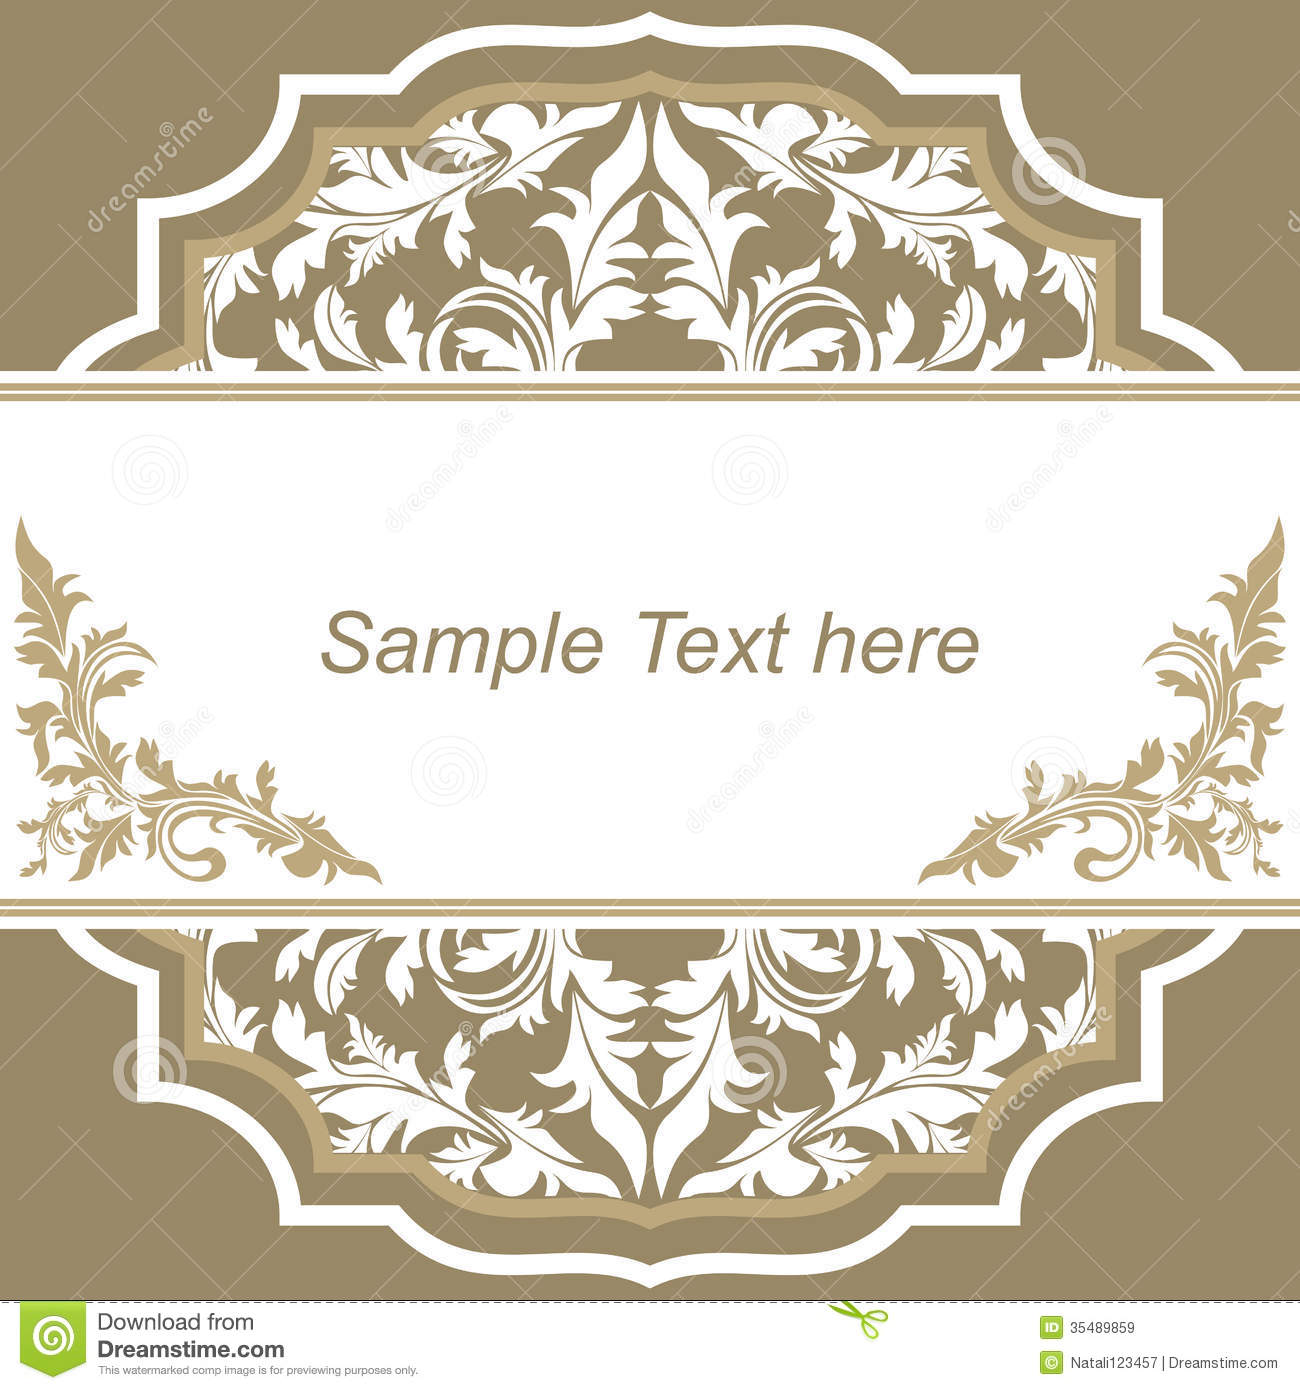 Create Invitation Template: Invitation Design Template. Stock Vector